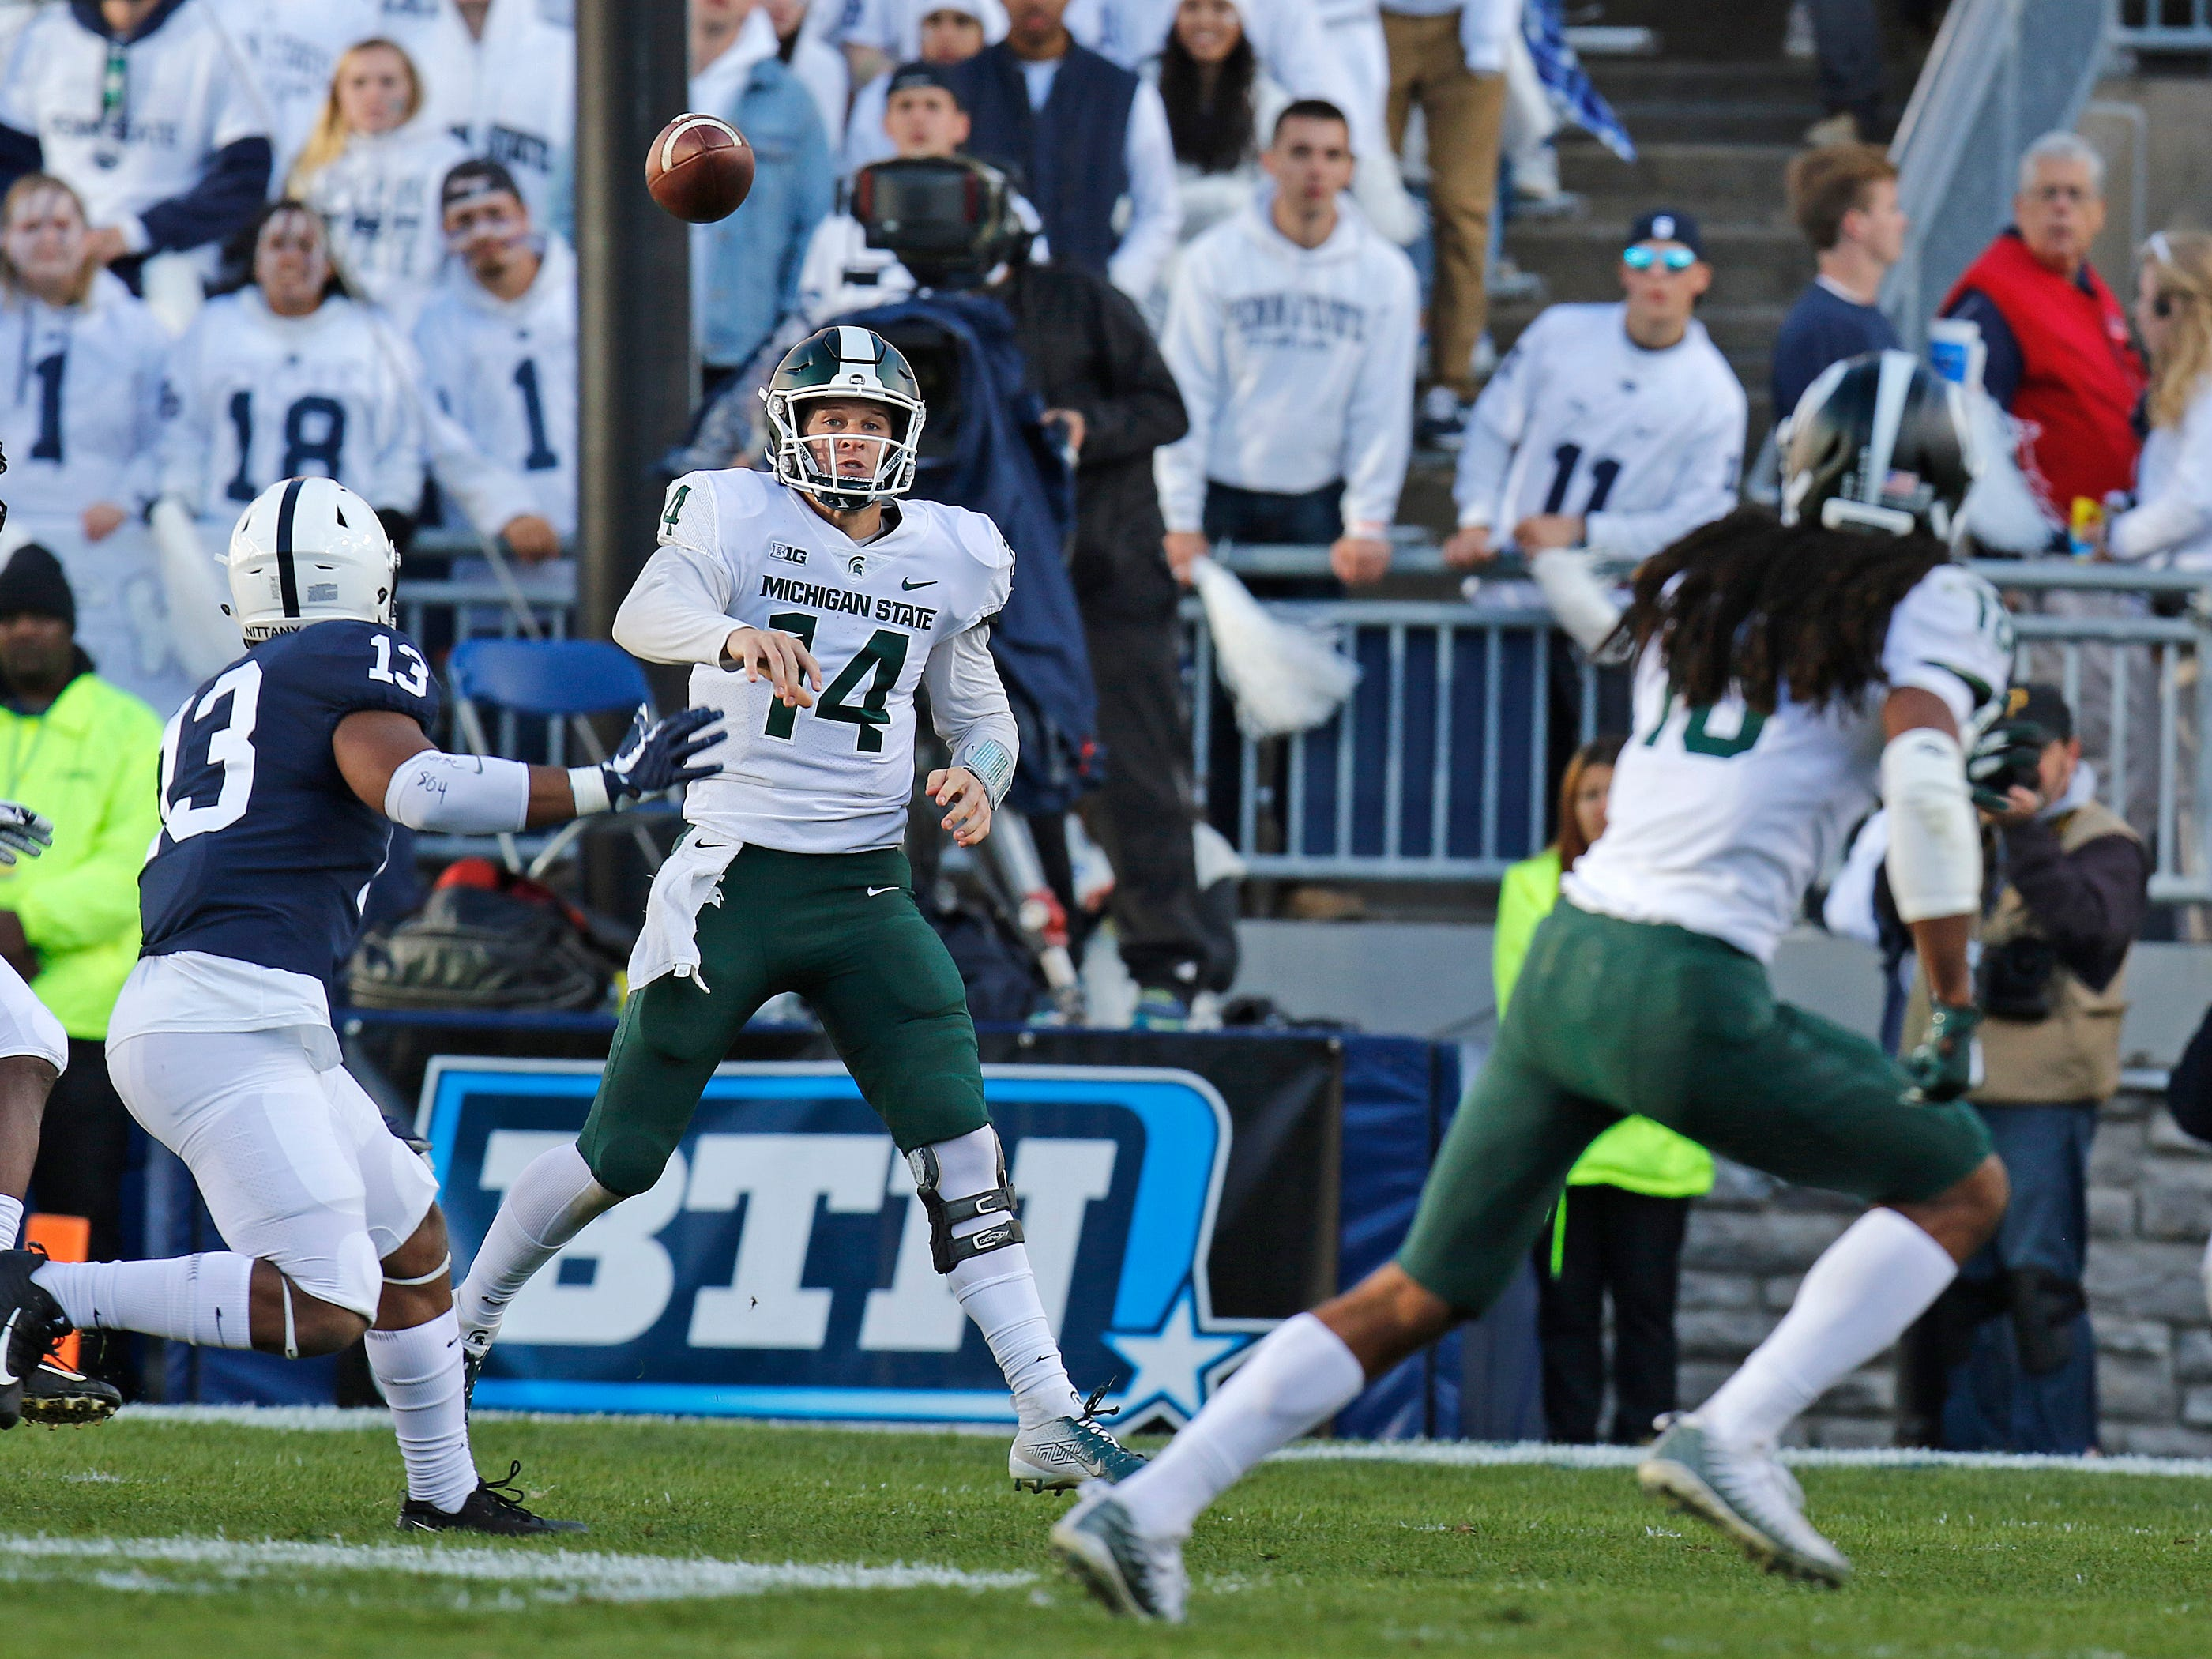 STATE COLLEGE, PA - OCTOBER 13:  Brian Lewerke #14 of the Michigan State Spartans passes against the Penn State Nittany Lions on October 13, 2018 at Beaver Stadium in State College, Pennsylvania.  (Photo by Justin K. Aller/Getty Images)